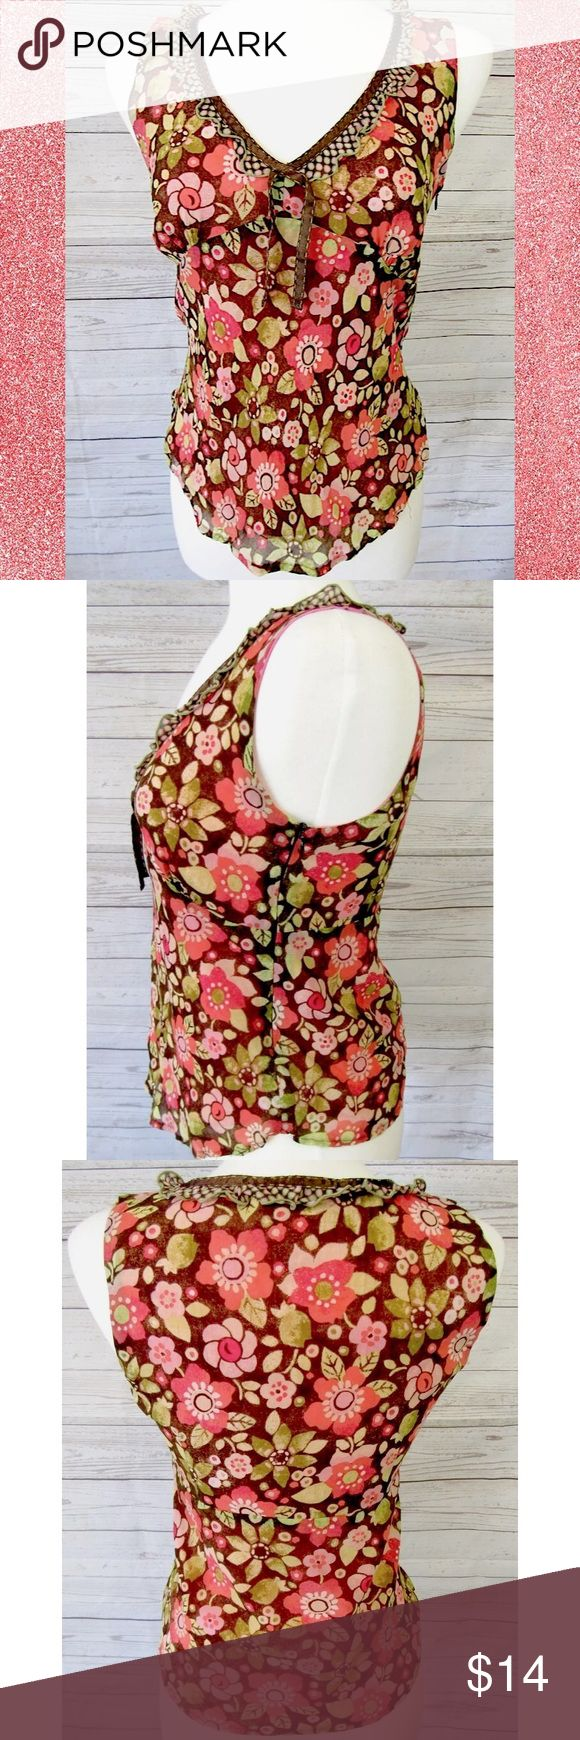 """Sigrid Olsen Petite Blouse Sz 8 Brand:  Sigrid Olsen Style: Sleeveless top, lined, side zip, ruffle edge at neck  Size:  8P Color/Pattern: Floral, pink, coral, brown, green  Material: Rayon   Measurements taken flat:   -Shoulder to hem:   21"""" -Across under arm:  17"""" Garment Care: dry clean Condition: No flaws. Sigrid Olsen Tops Blouses"""